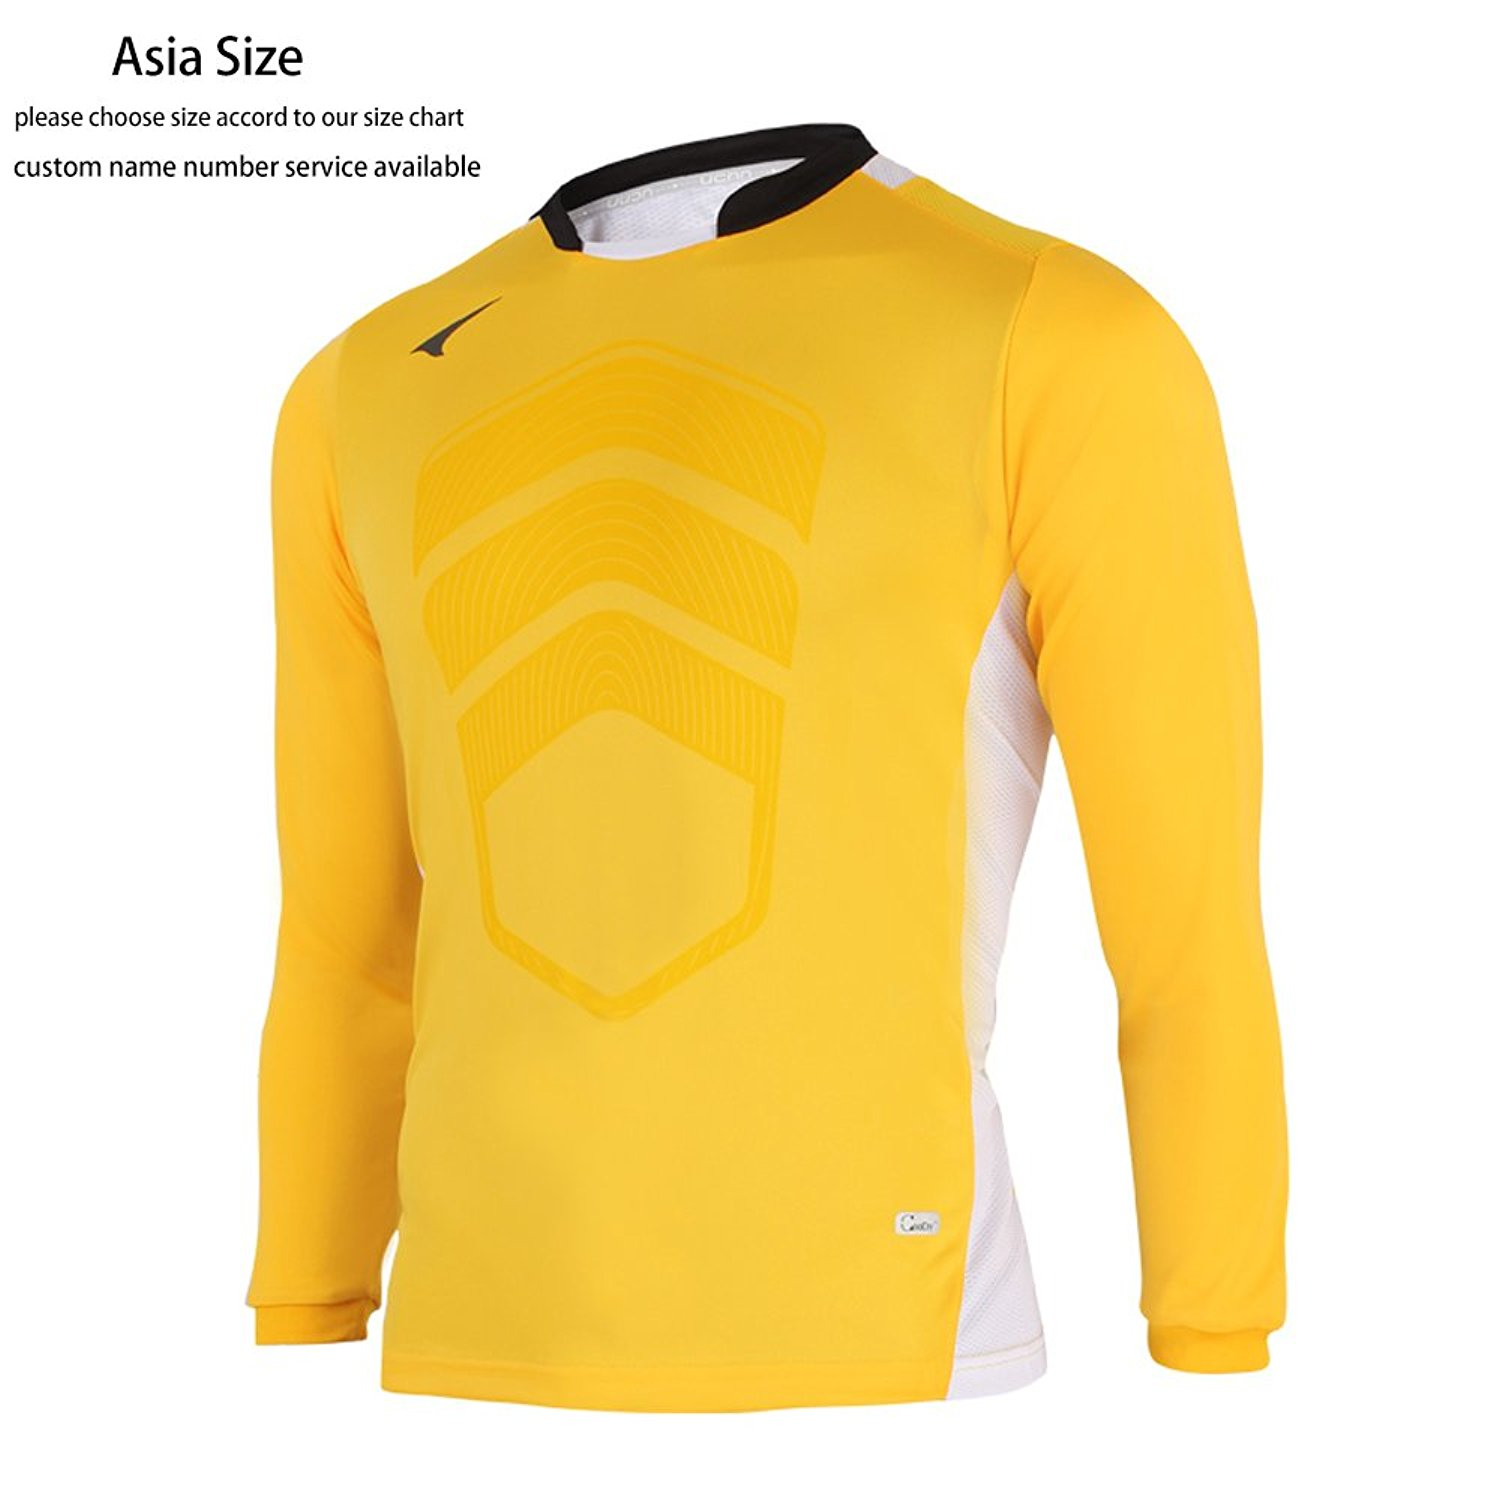 2f9977bf333 Get Quotations · Ucan Soccer Goalkeeper Jersey Padded Goalie Jersey Youth  and Men K05130